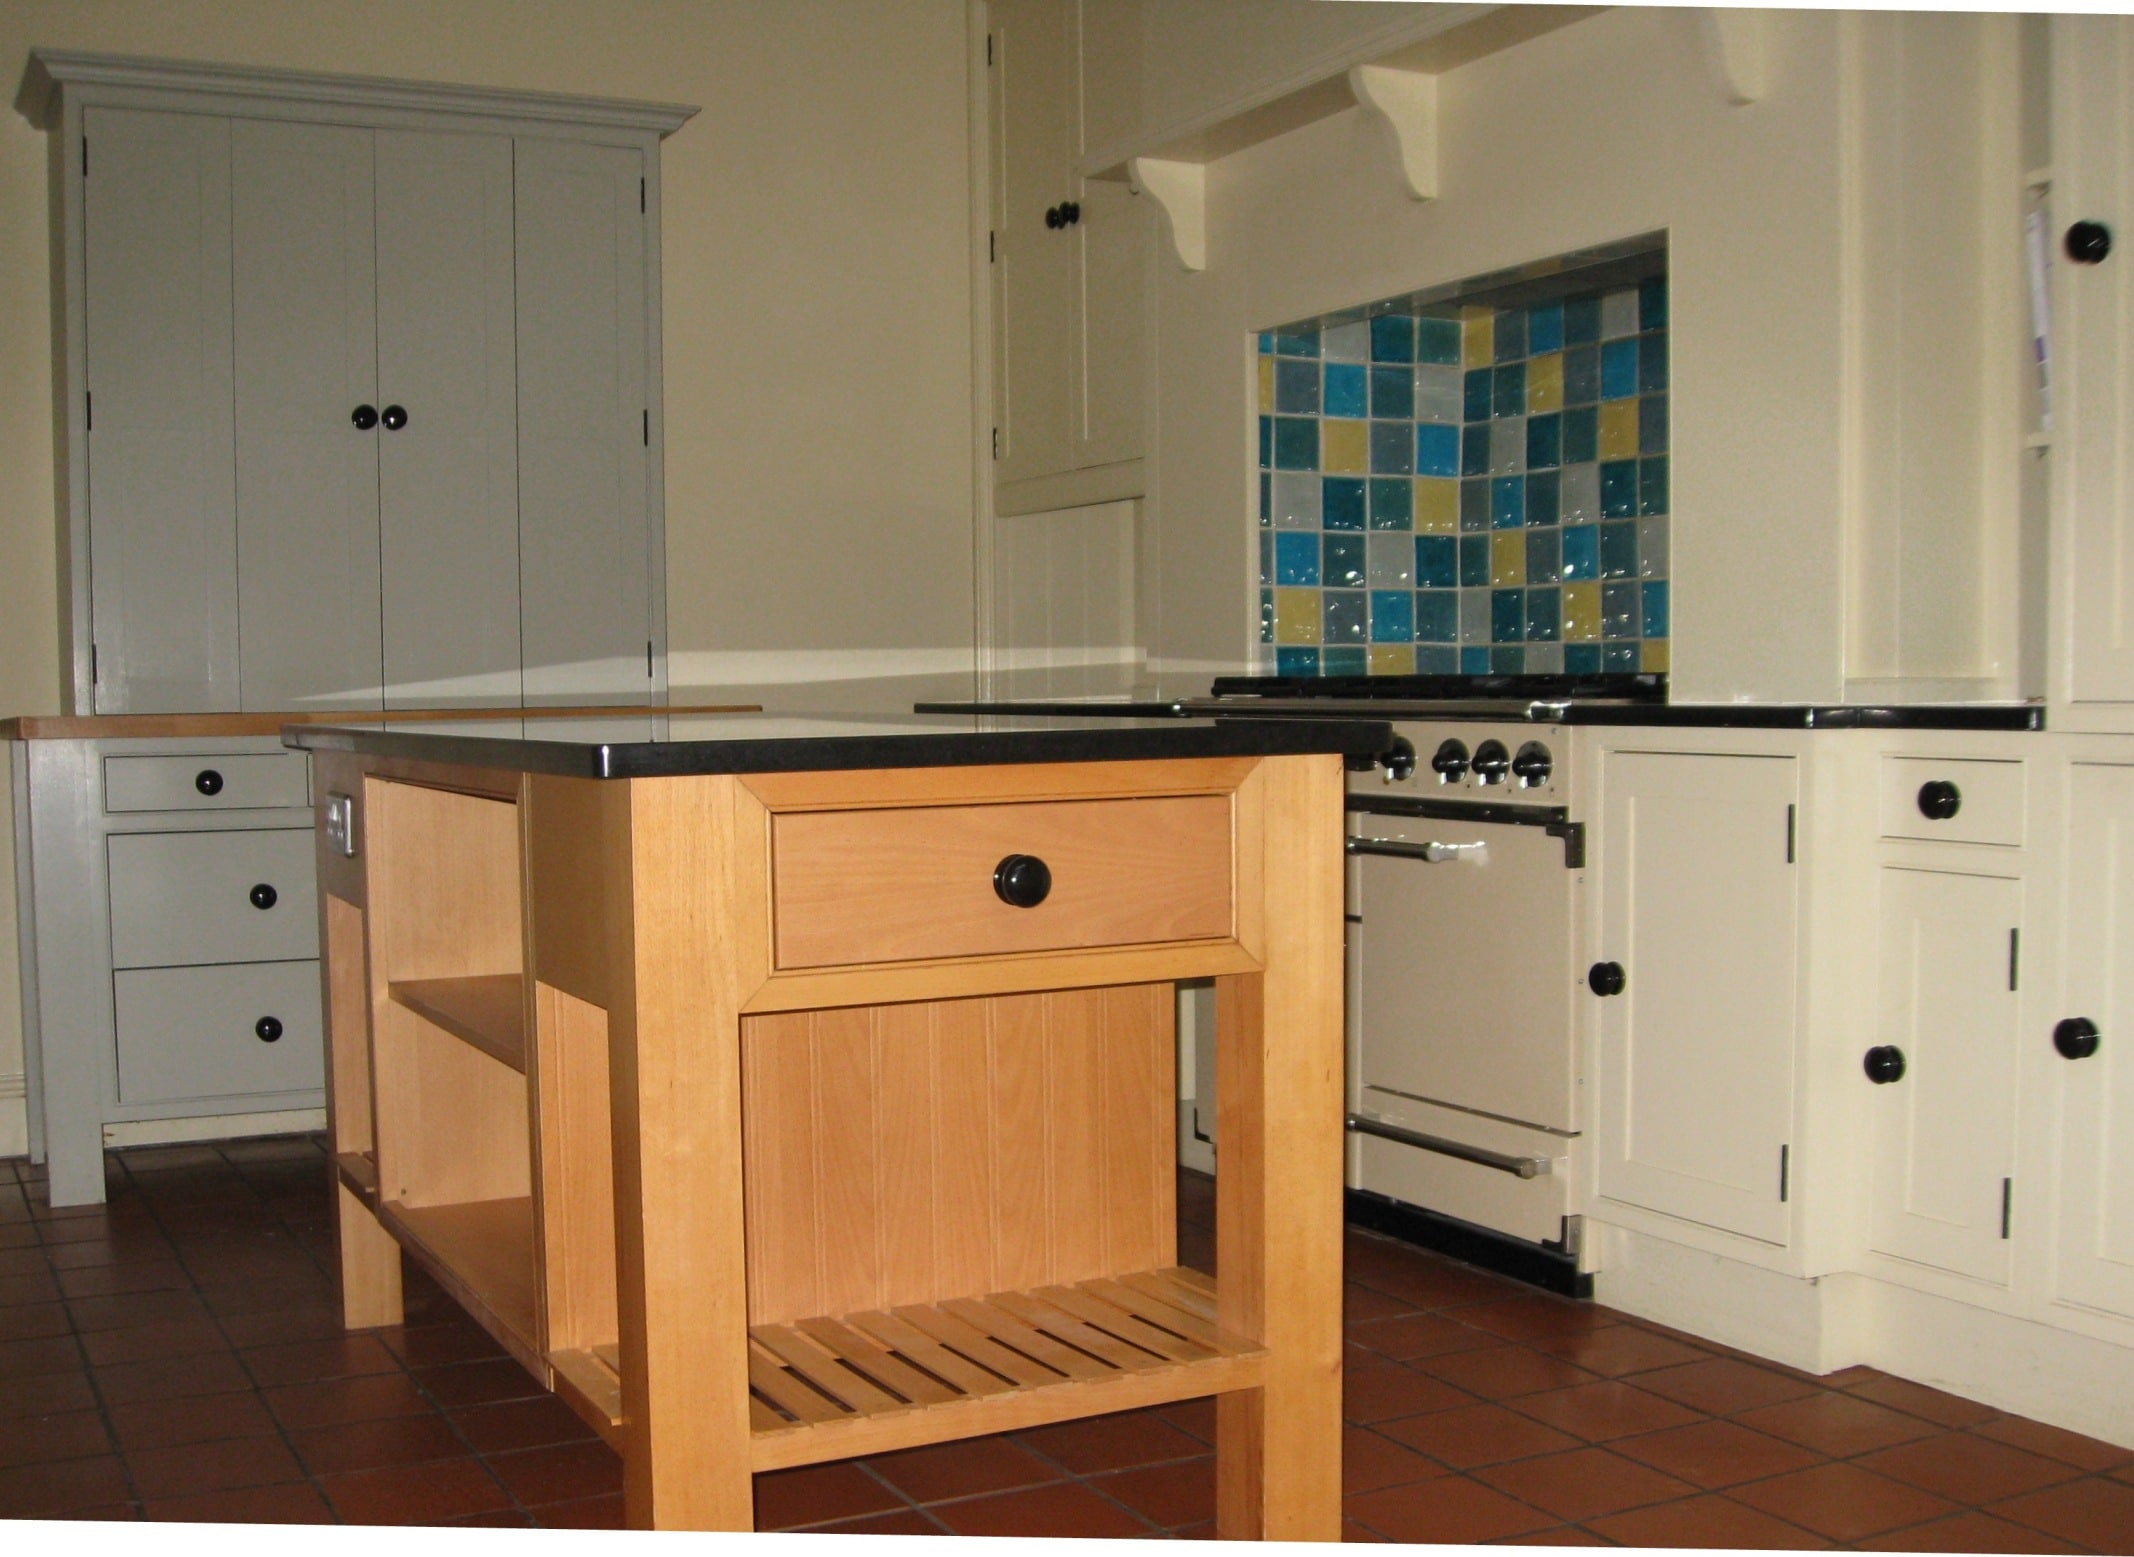 Hand Built Kitchen Lymm View 2 Transforming Homes For